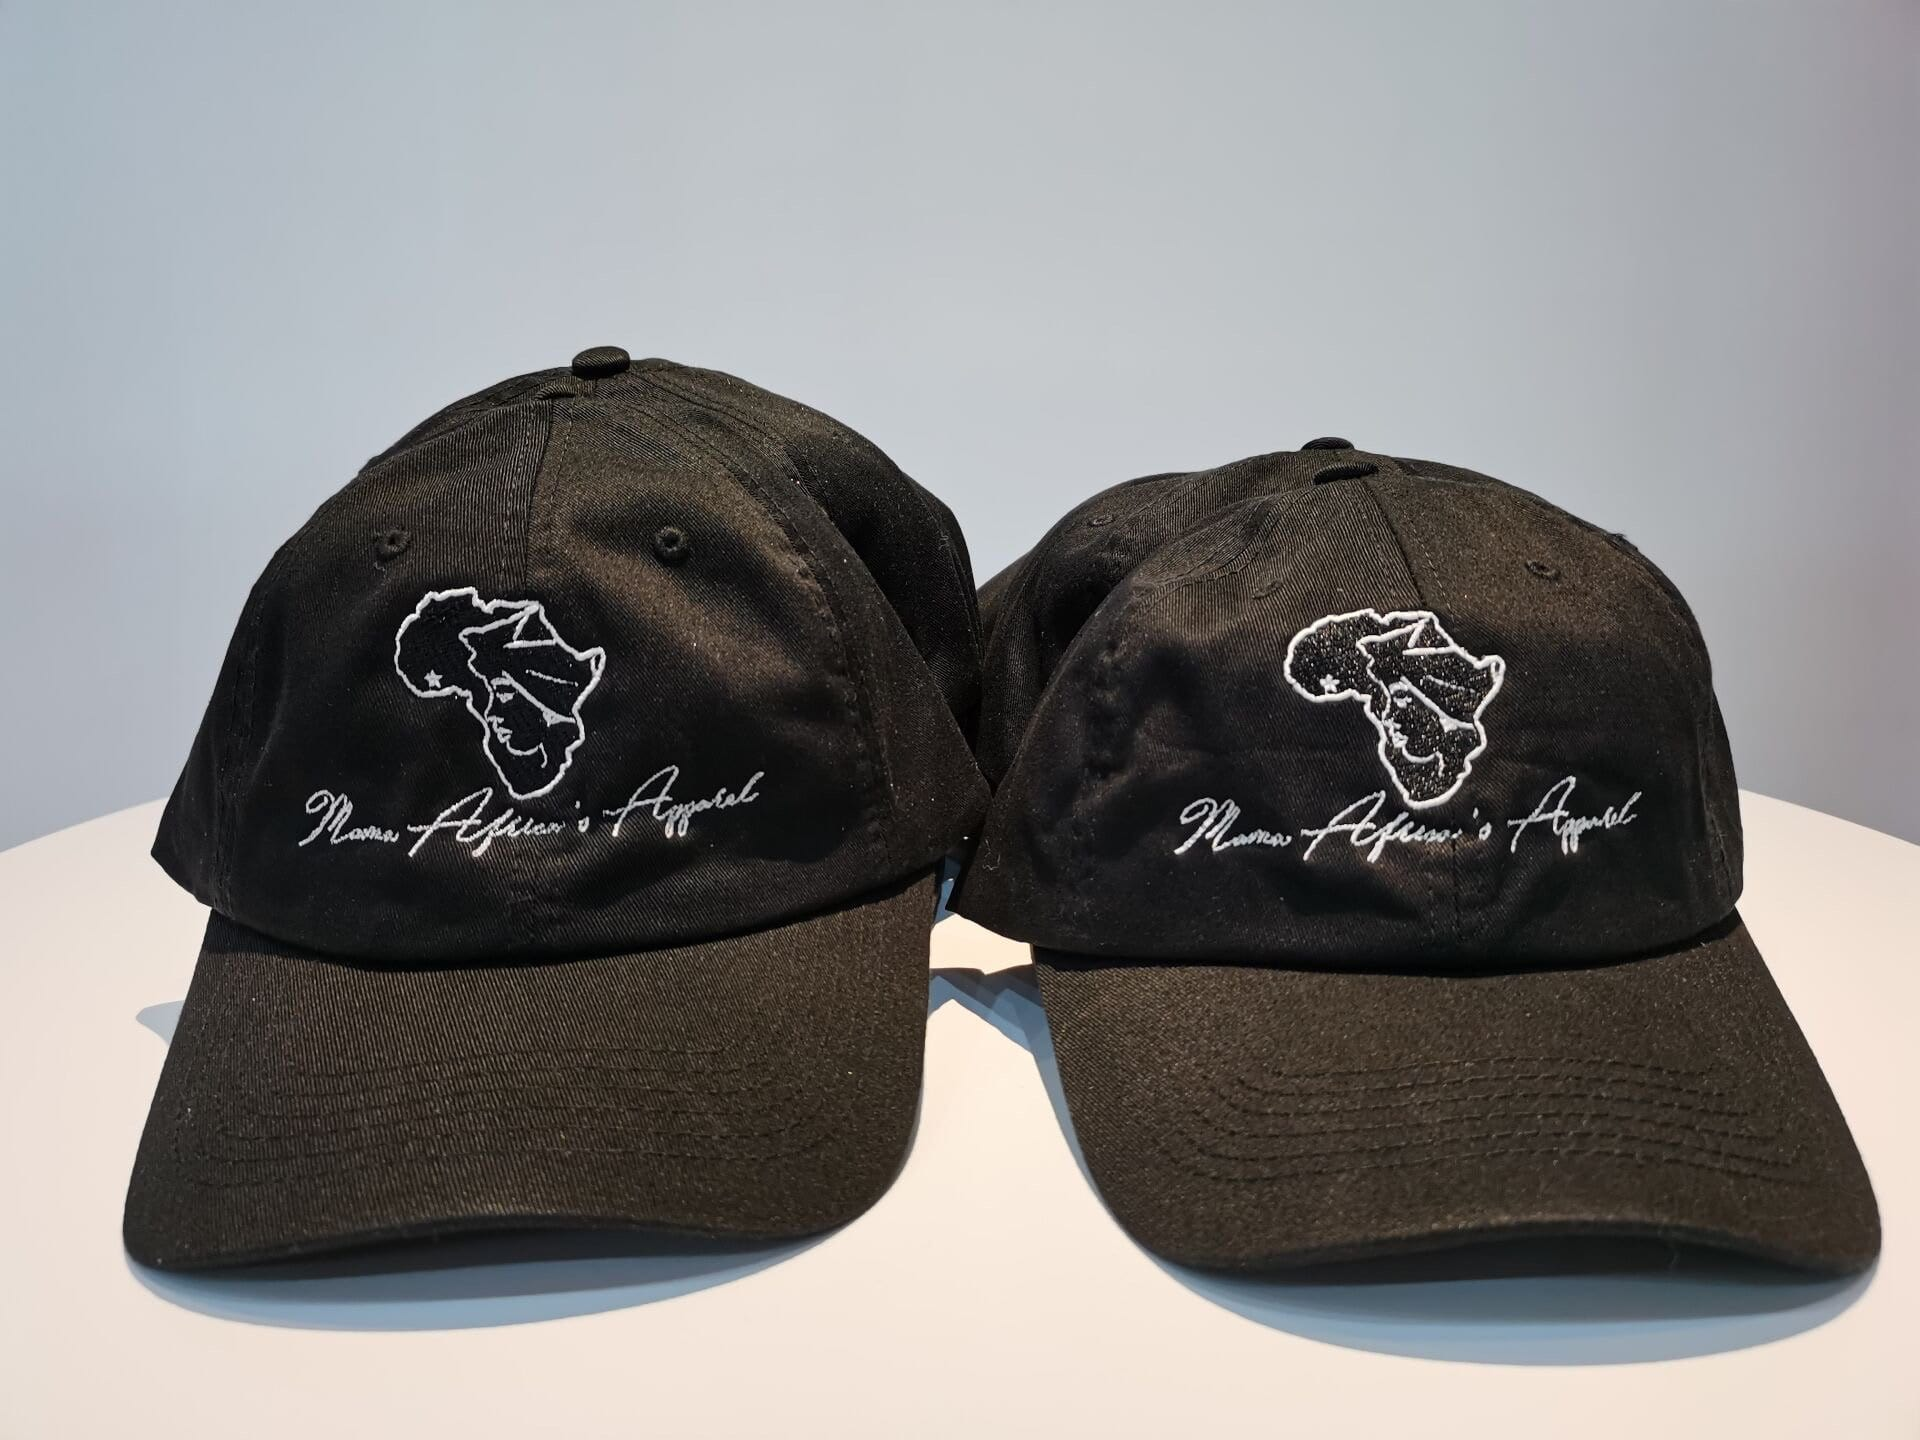 Mama Africa's Apparel Embroidered Dad Hat